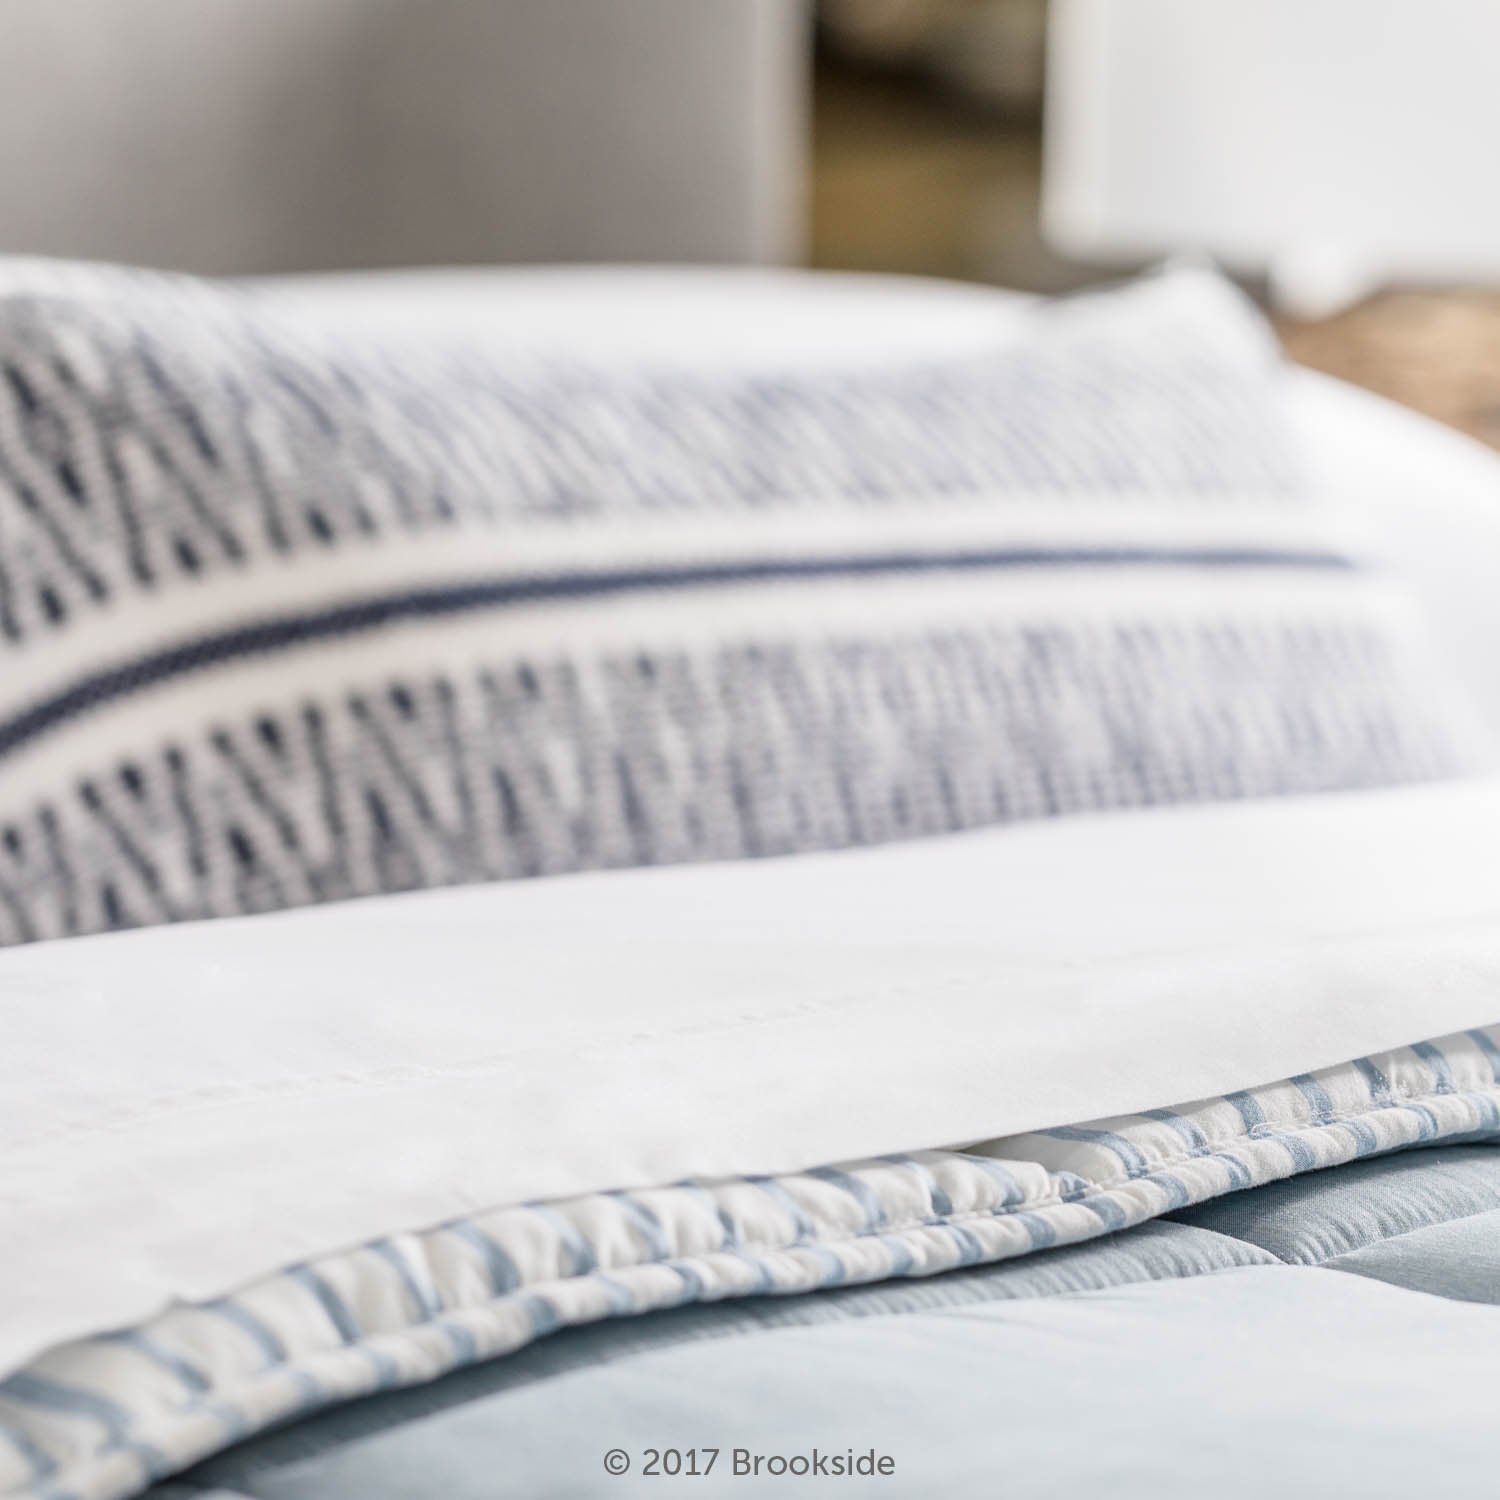 BROOKSIDE - TENCEL Sheet Set - Luxurious Feel - Great for Sensitive Skin - Sateen Weave - Eco Friendly - King - White by Brookside (Image #4)